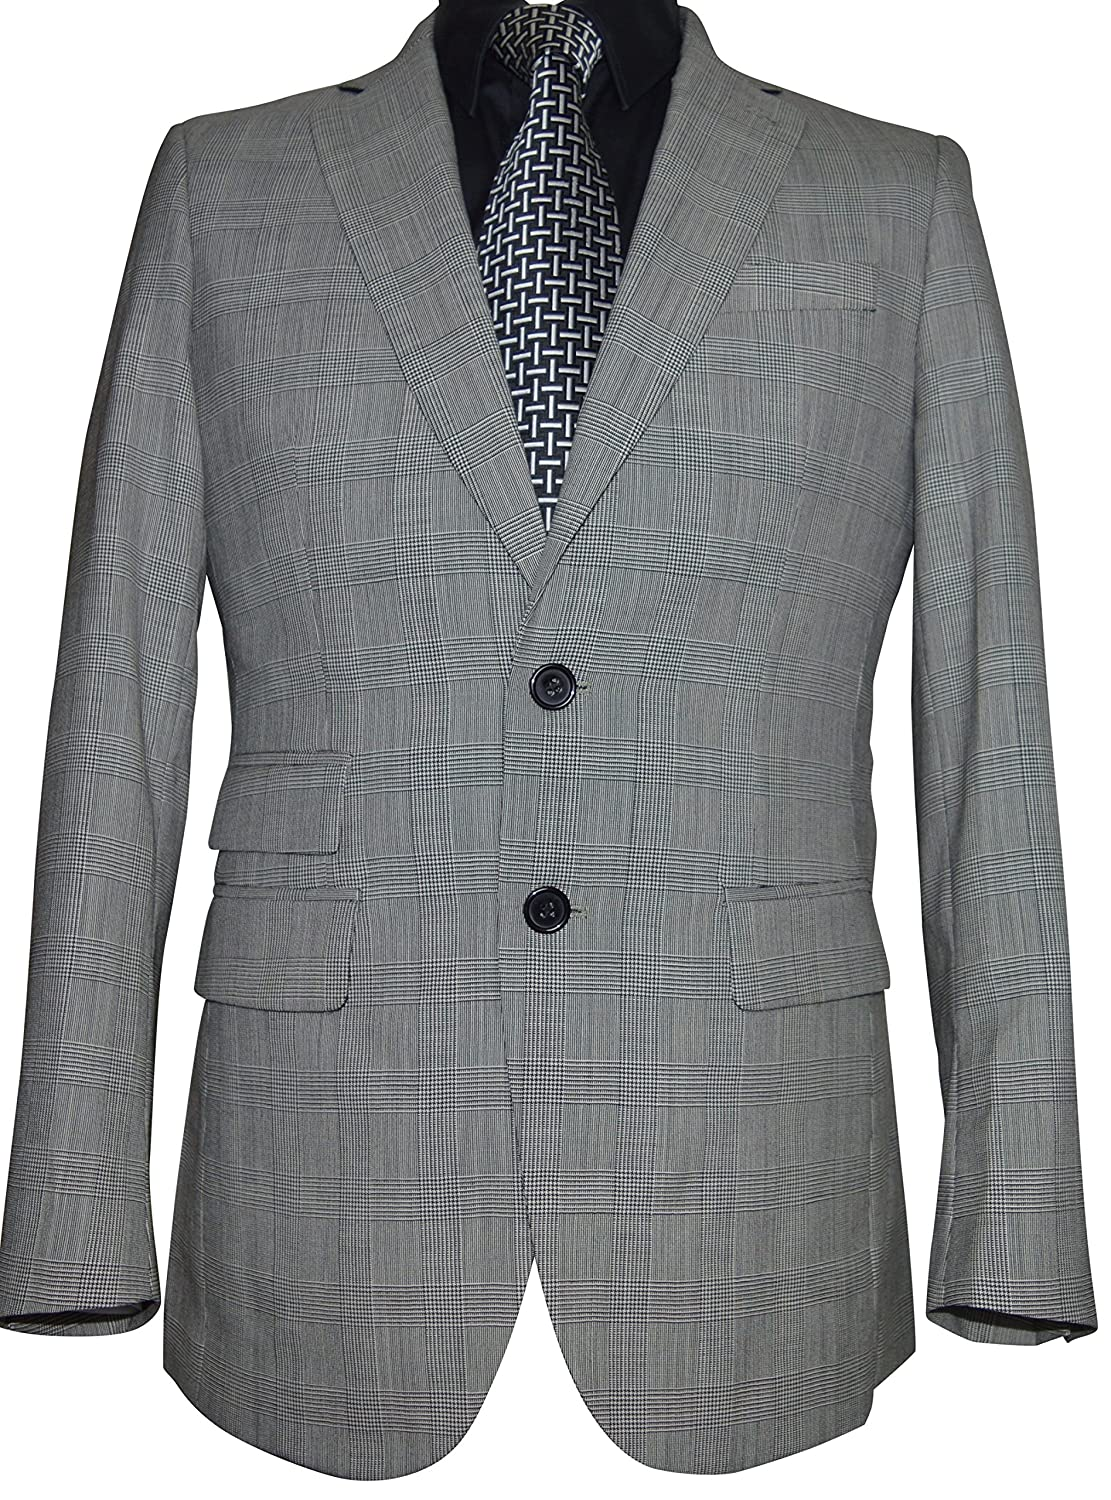 MENS PRINCE OF WALES CHECK DESIGNER SUIT Amazon Clothing